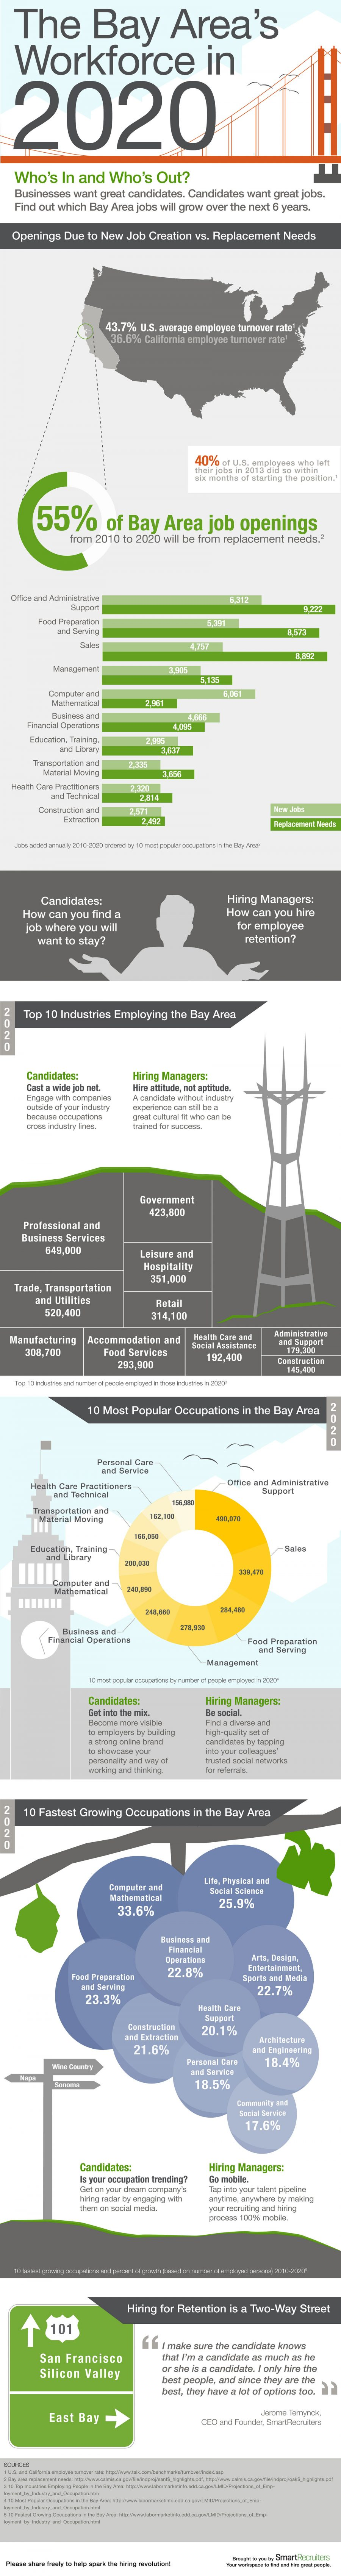 infographic-BayArea_2020Workforce